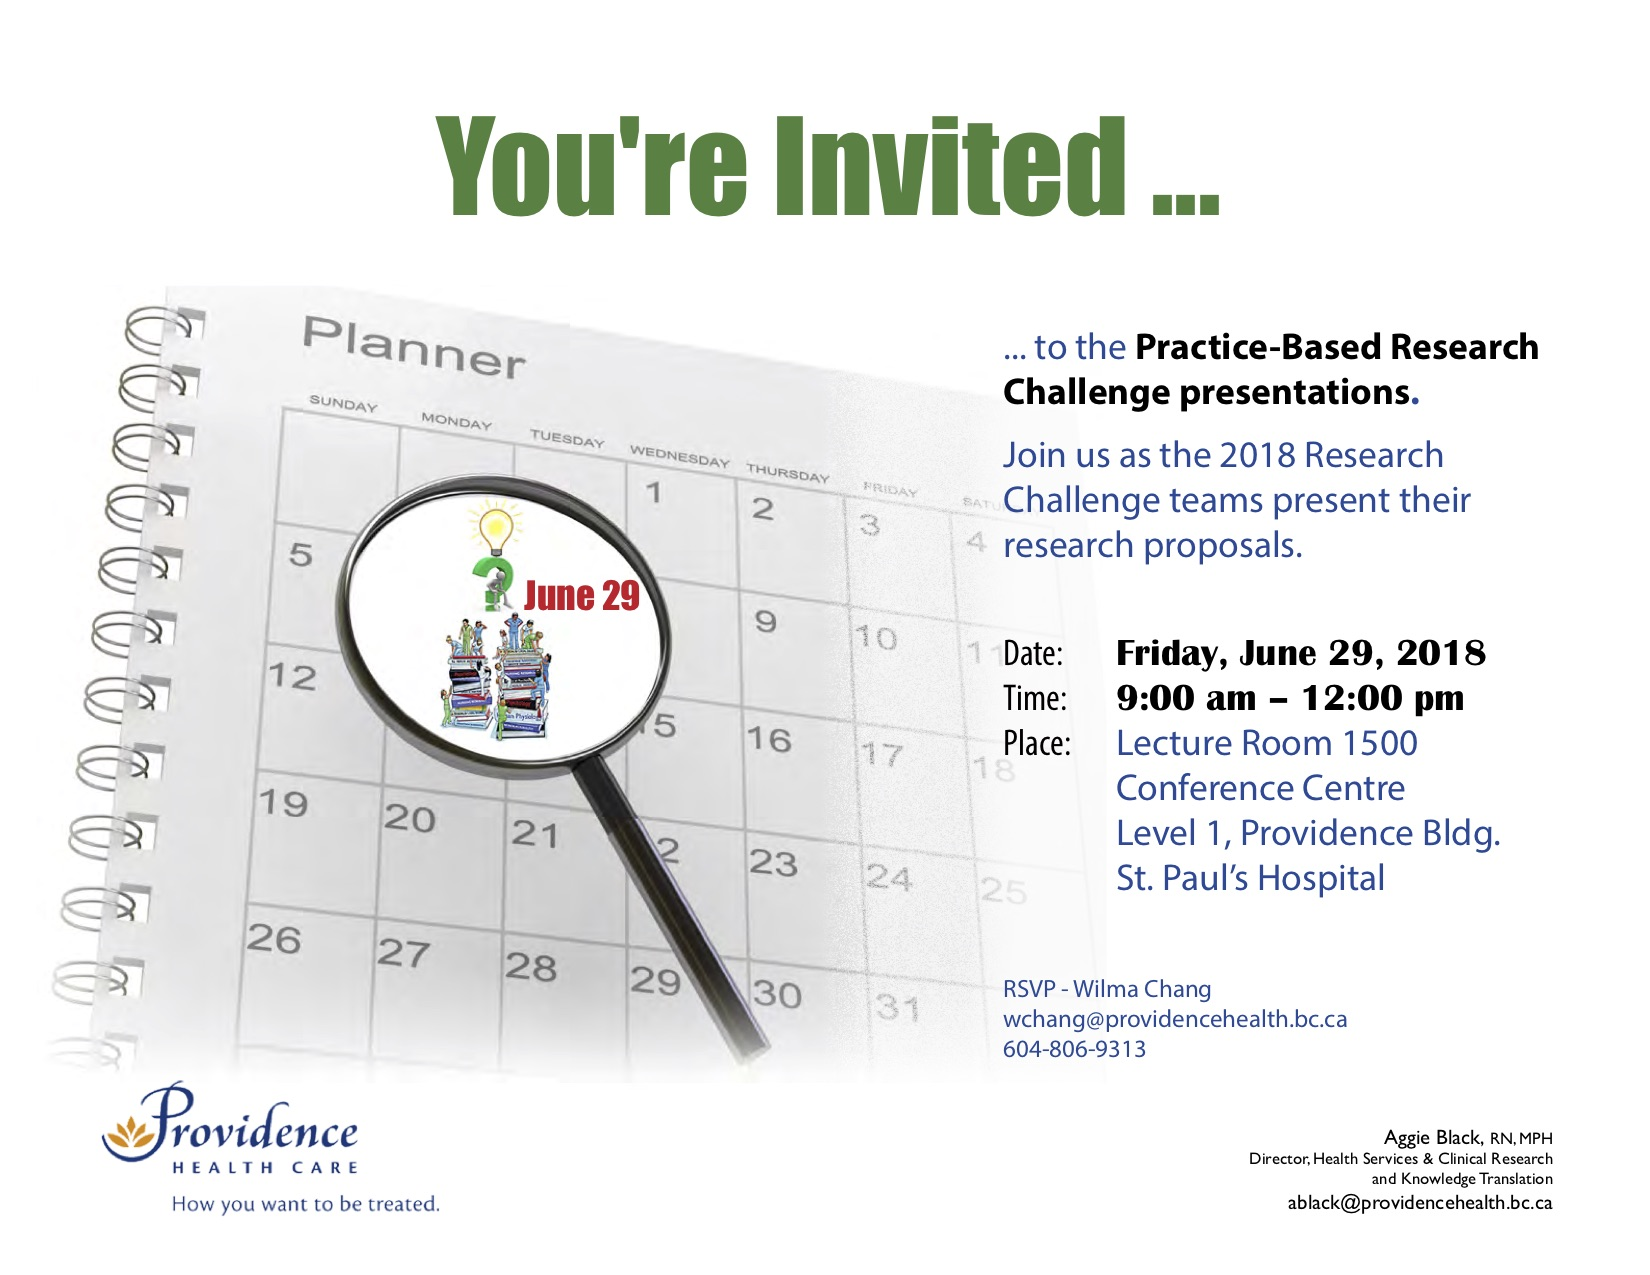 PHC Practice-Based Research Challenge Proposal Presentations @ Lecture Room 1500 Conference Centre Level 1, Providence Bldg. St. Paul's Hospital